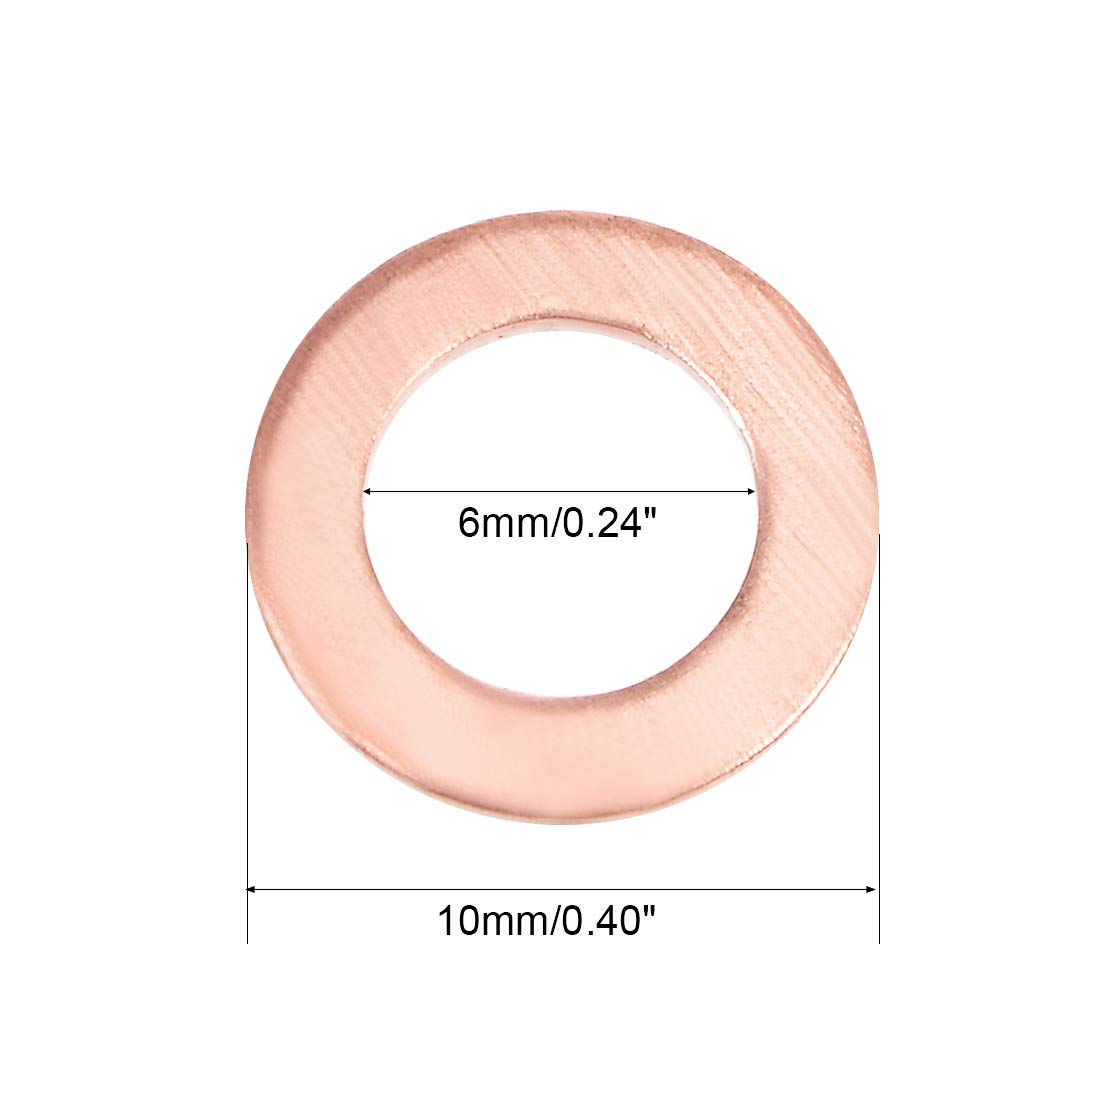 10mmx14mmx1.5mm Copper Crush Washer Flat Ring Gasket Fitting 20 Pcs Uxcell US-SA-AJD-345444